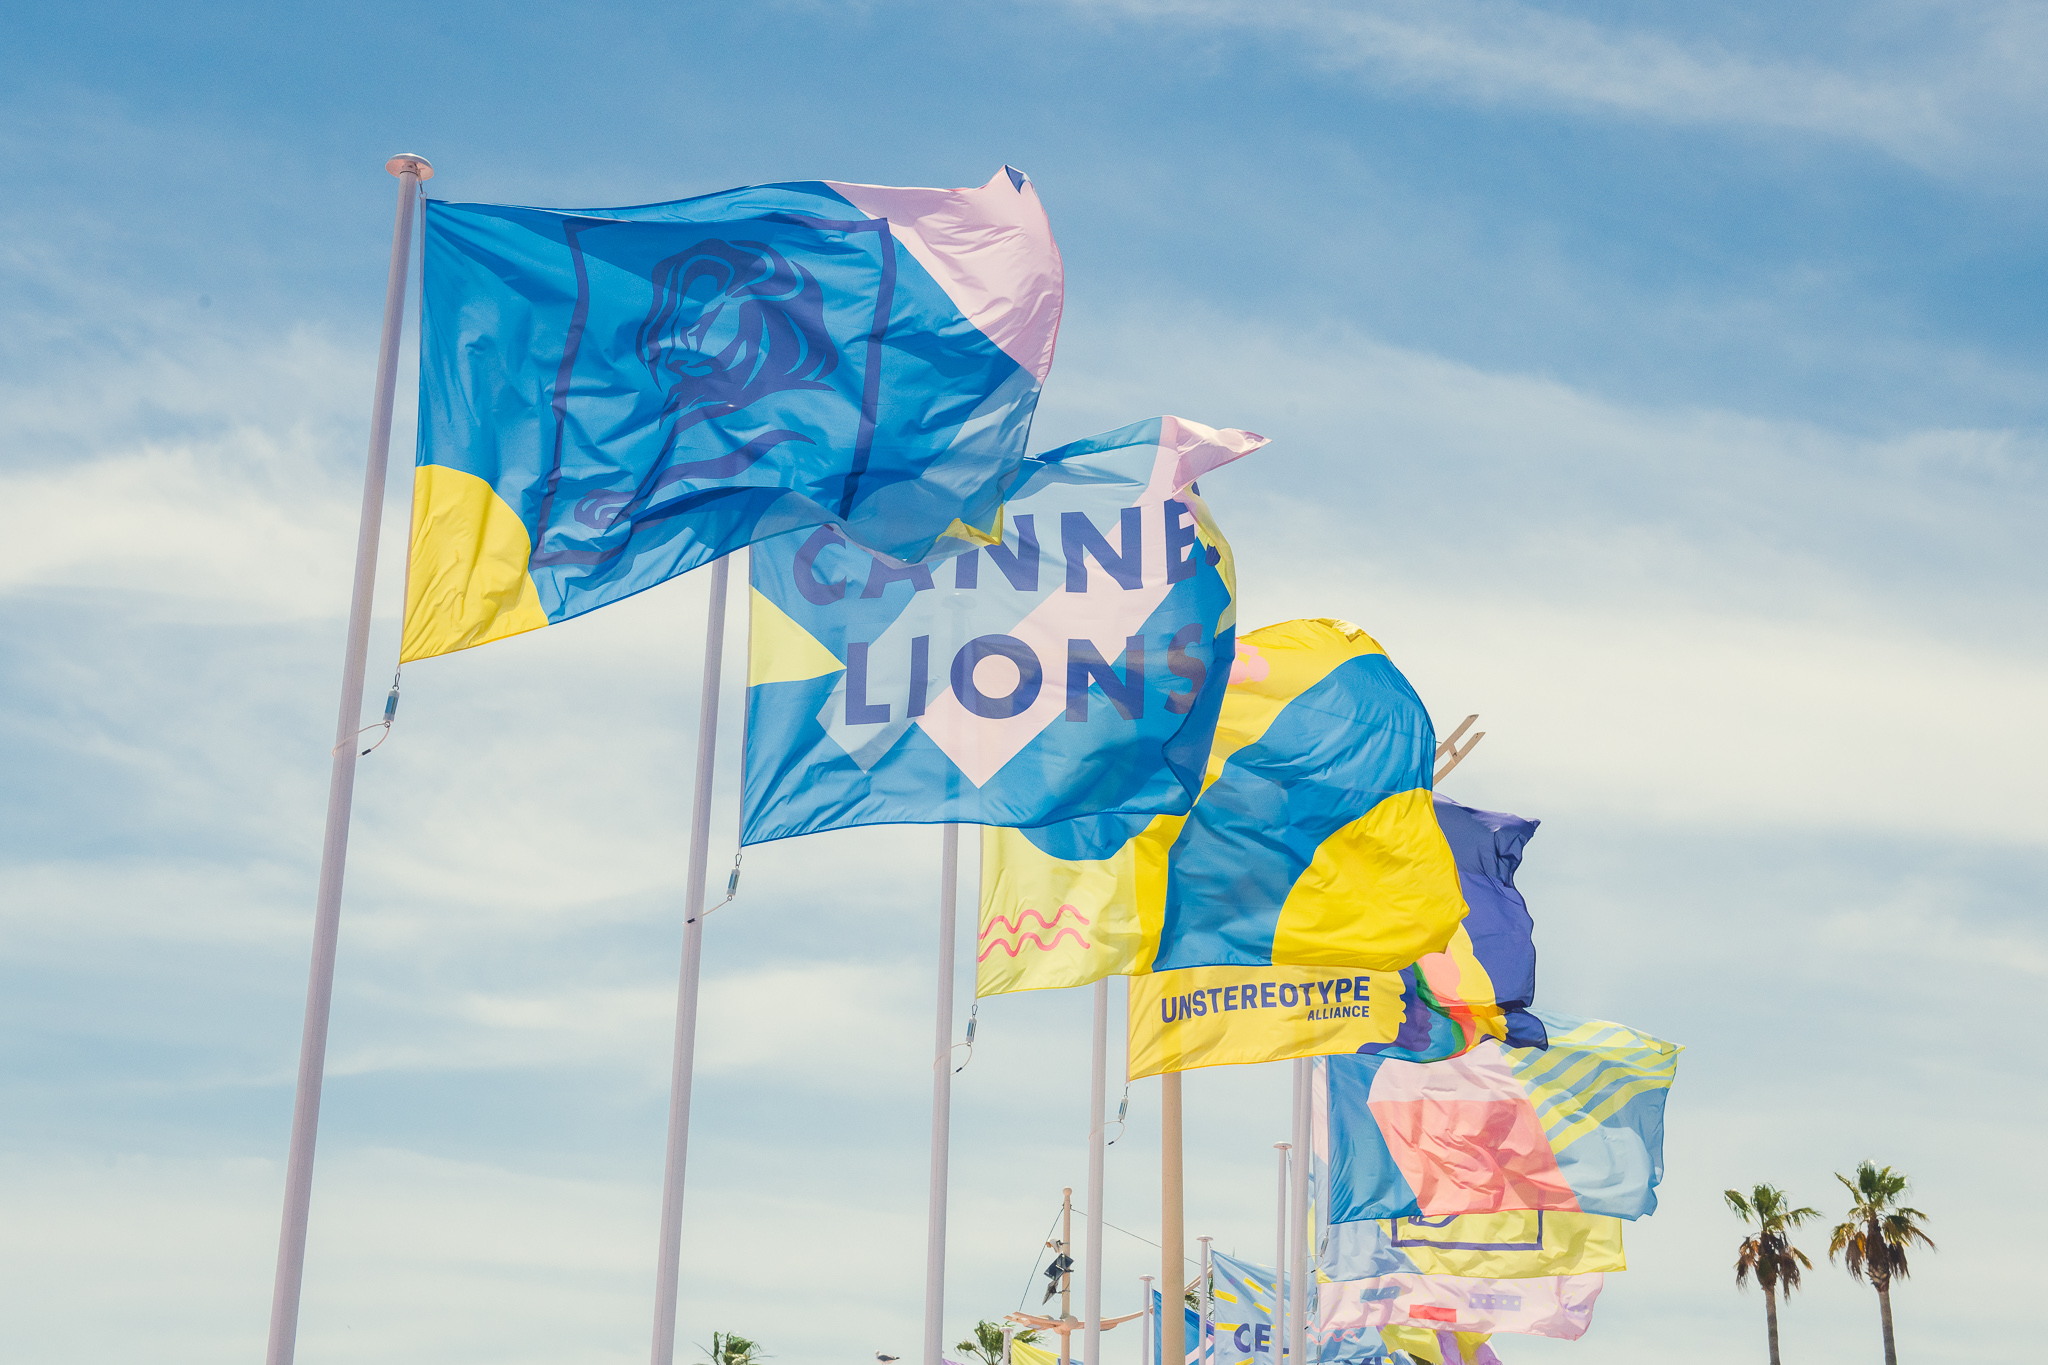 2019 Cannes Lions Festival Through Hinge's Eyes